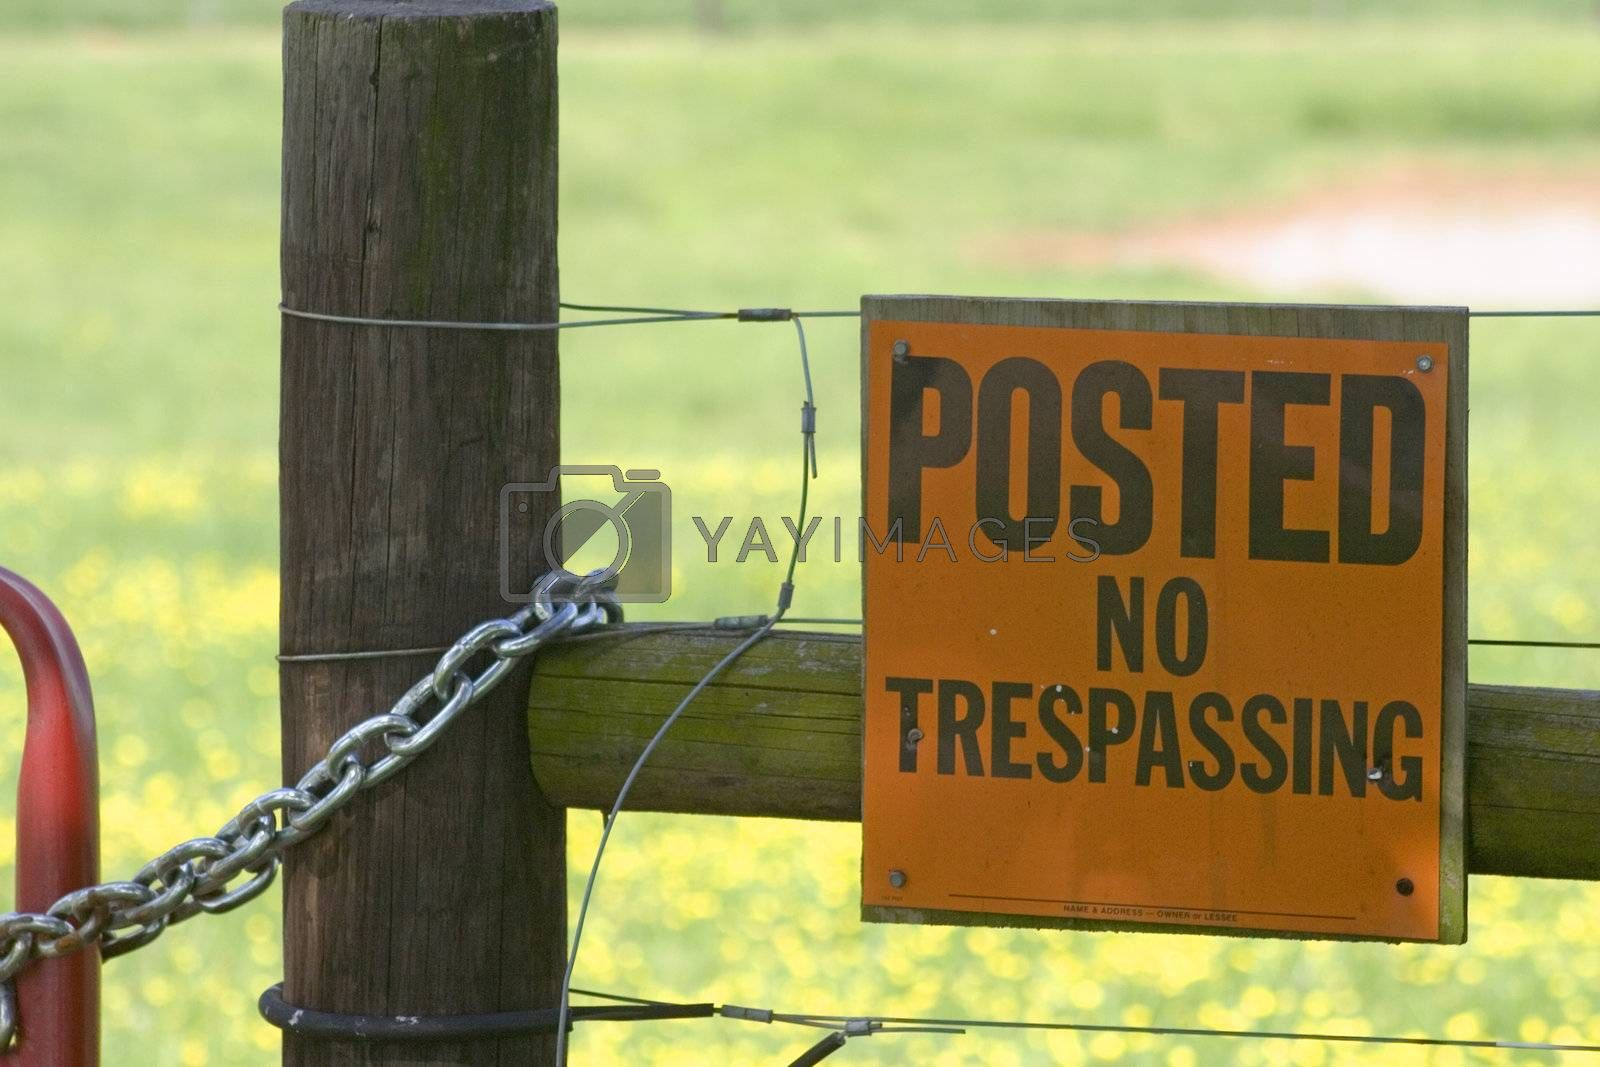 A posted sign that says no trespassing on an electric fence.